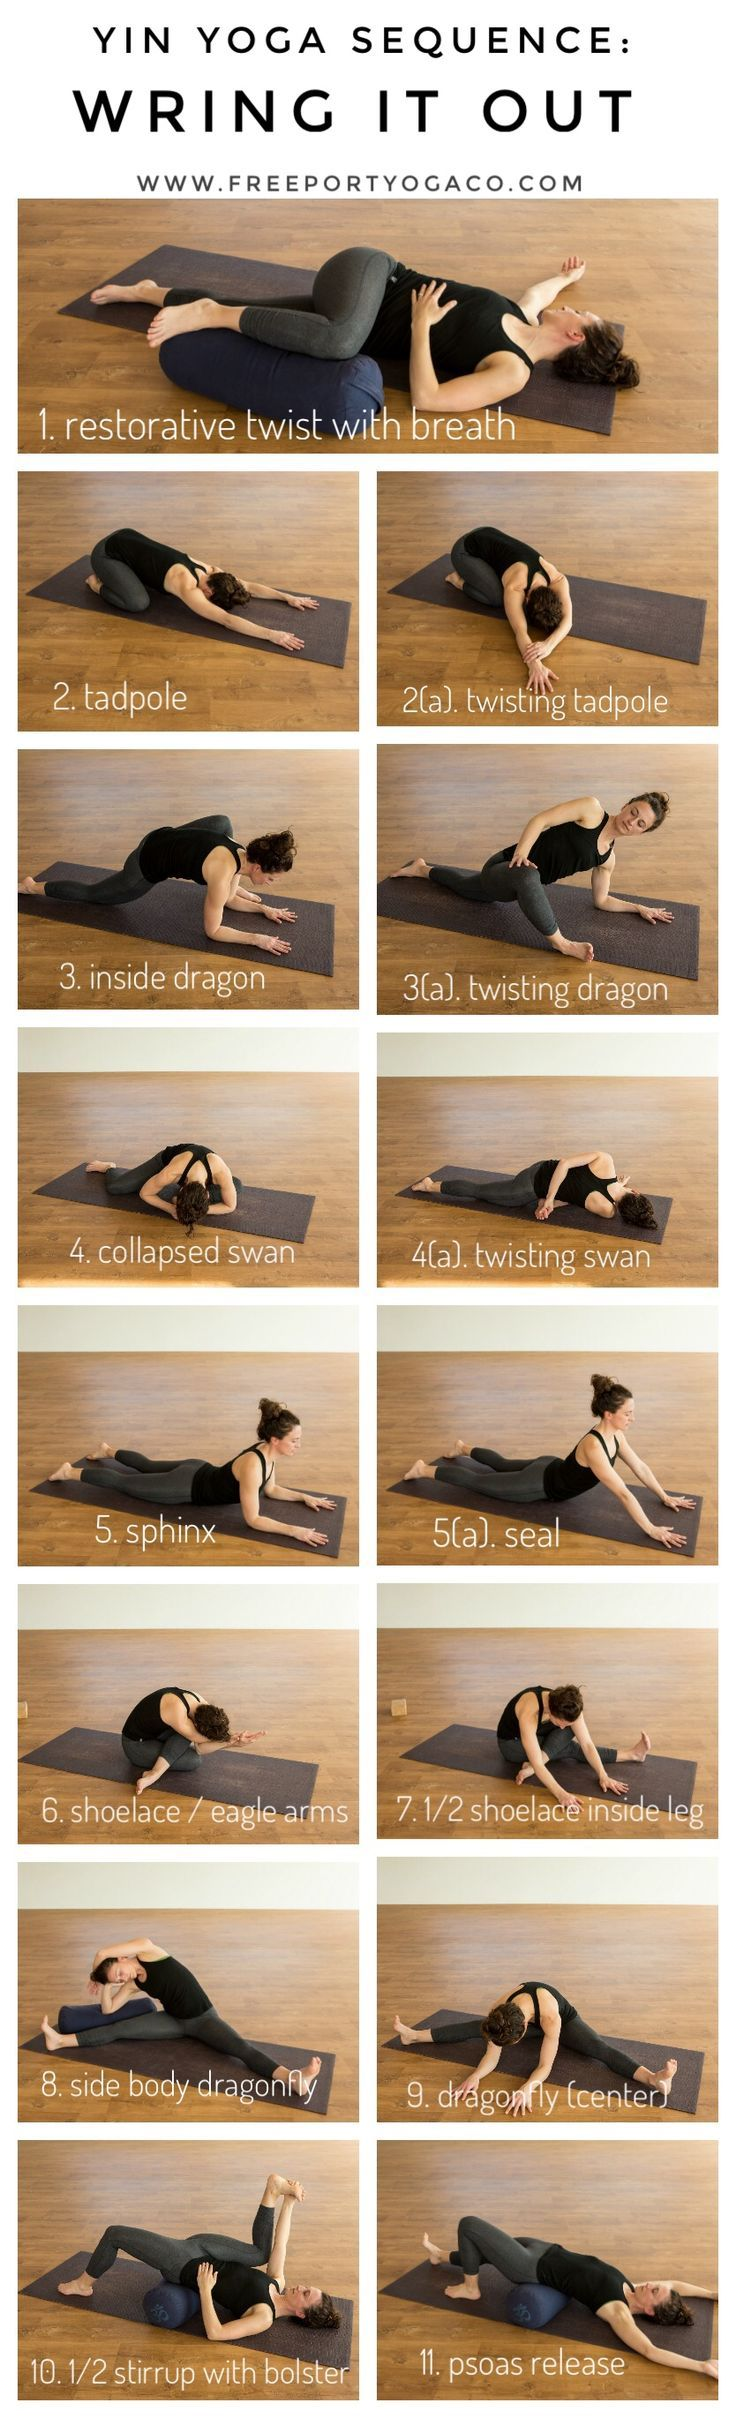 A spinal twist can serve as a sigh of relief for your entire being. A reset for the whole body, twisting postures can be both energizing and neutralizing, which can be the perfect antidote for when you're feeling tired or Read More freeportyogaco.com/